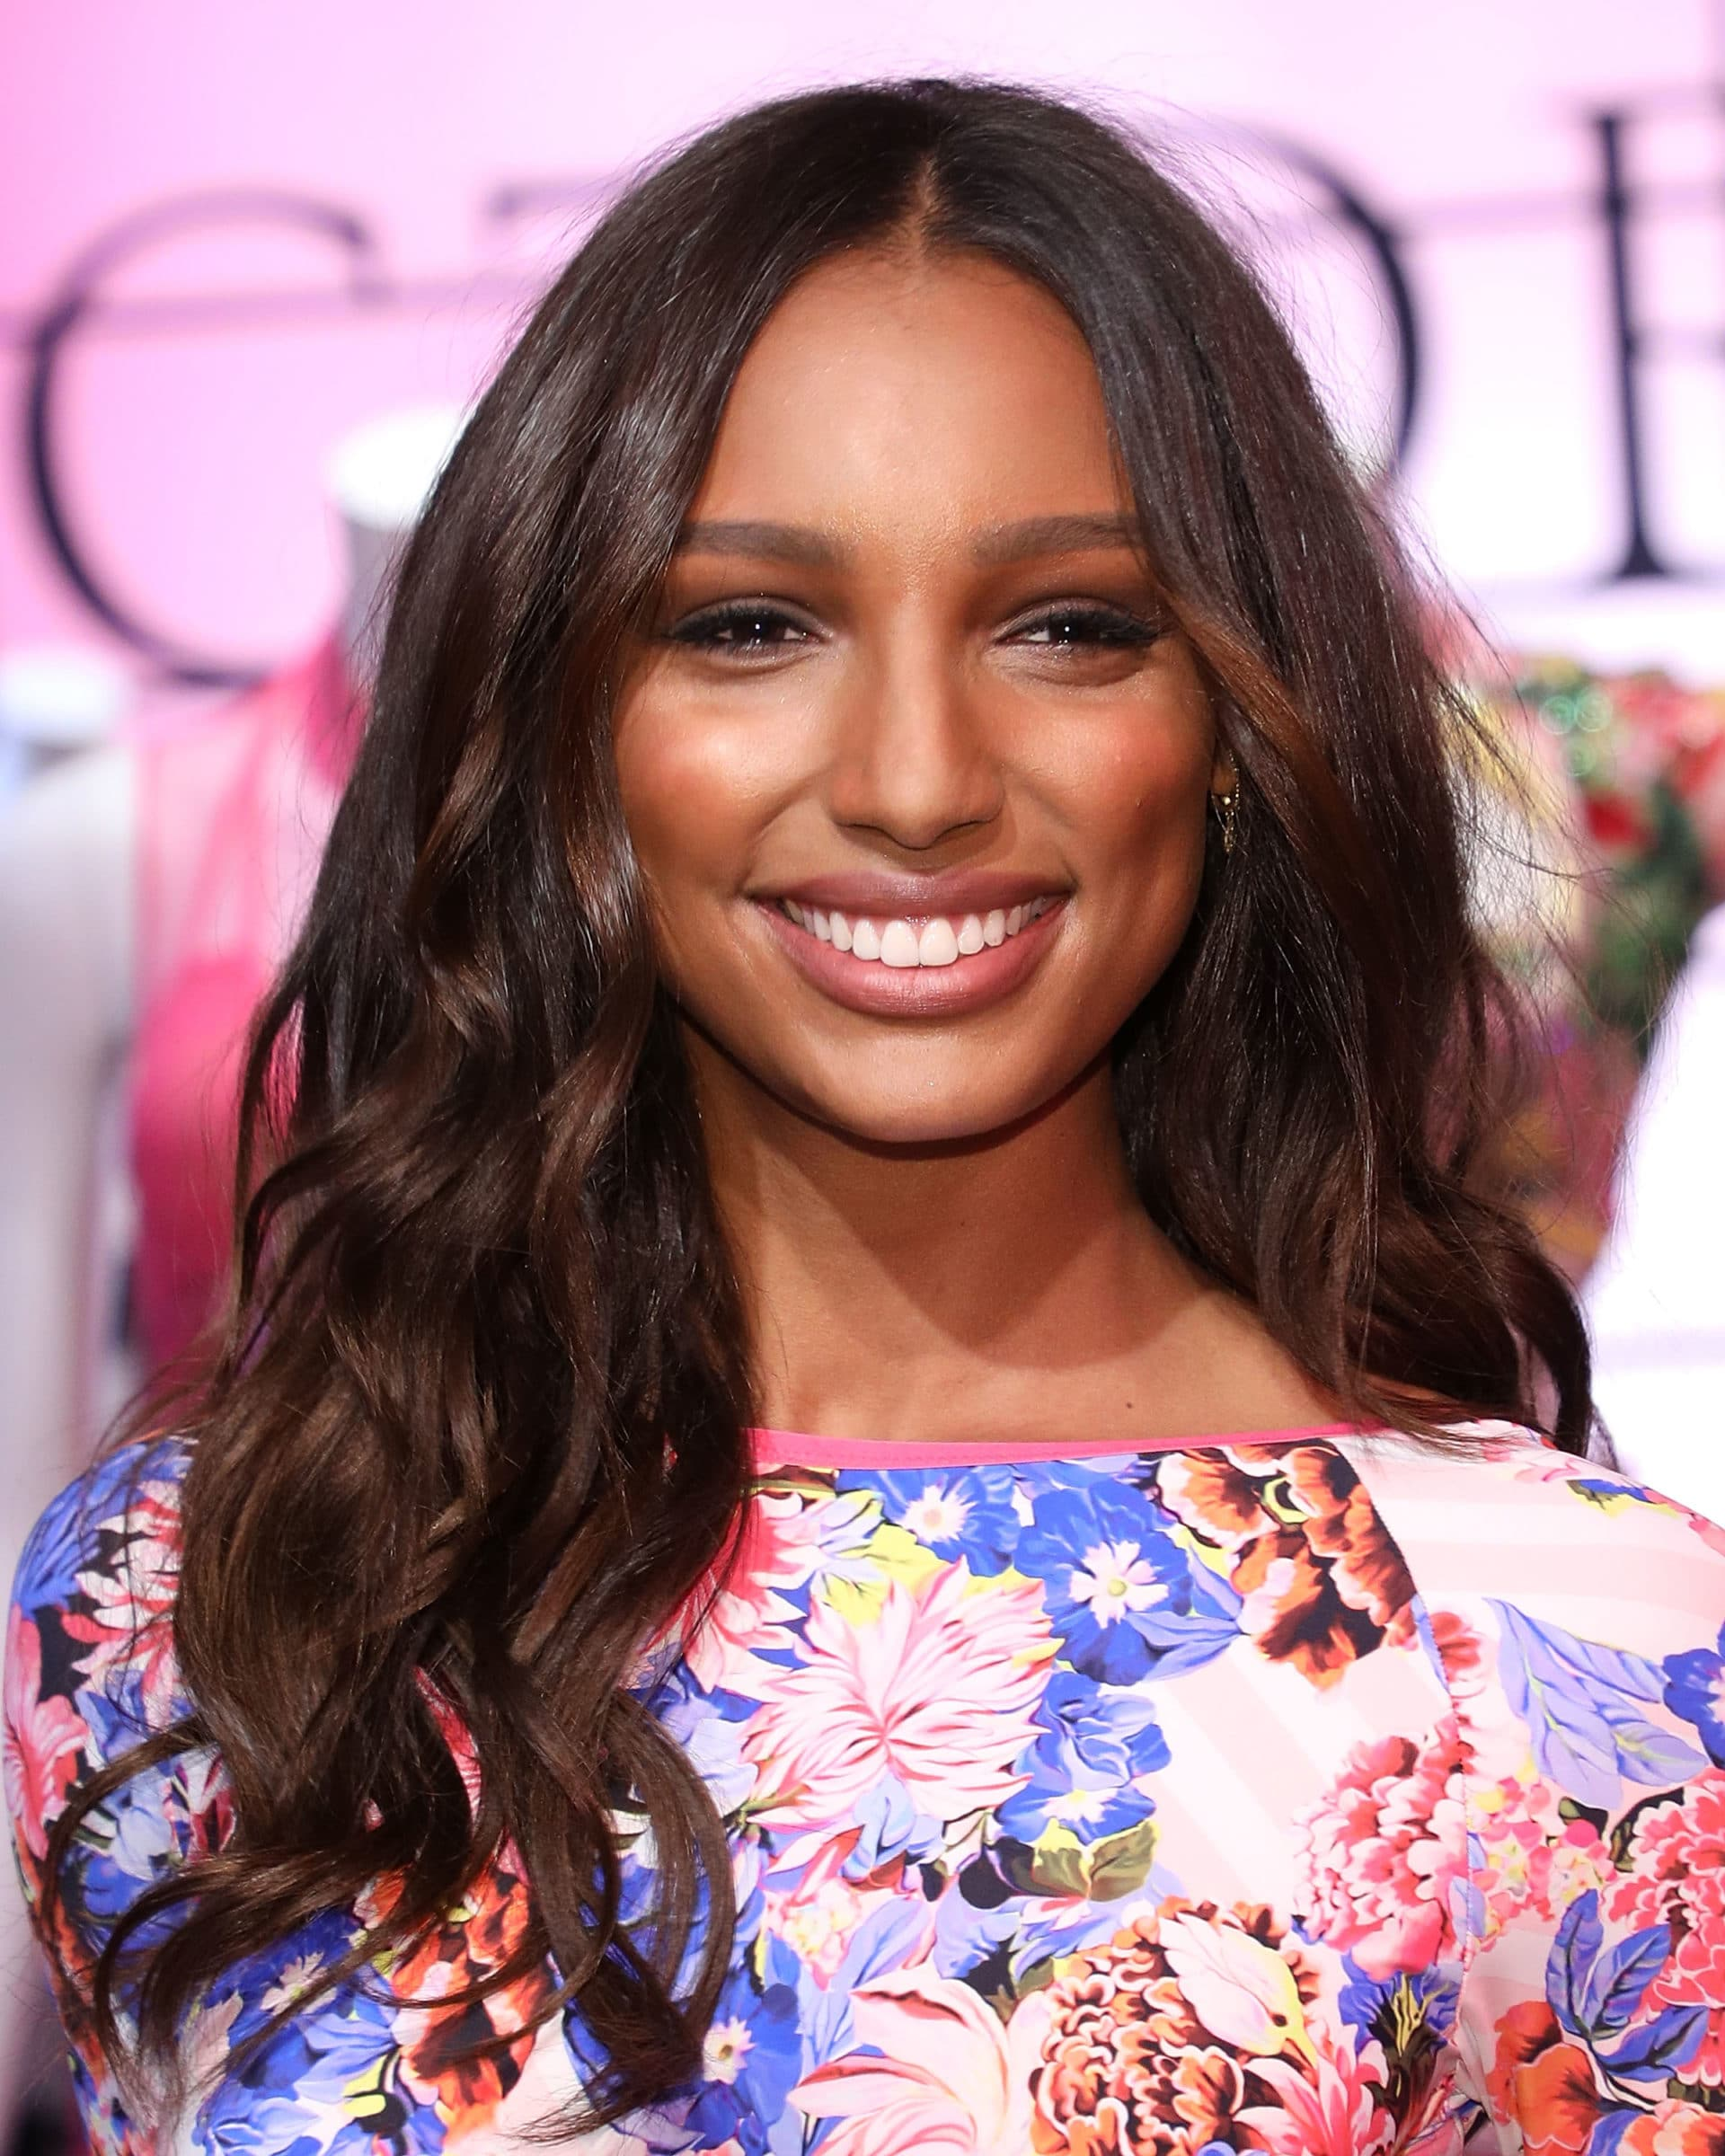 Fotos Jasmine Tookes nude photos 2019